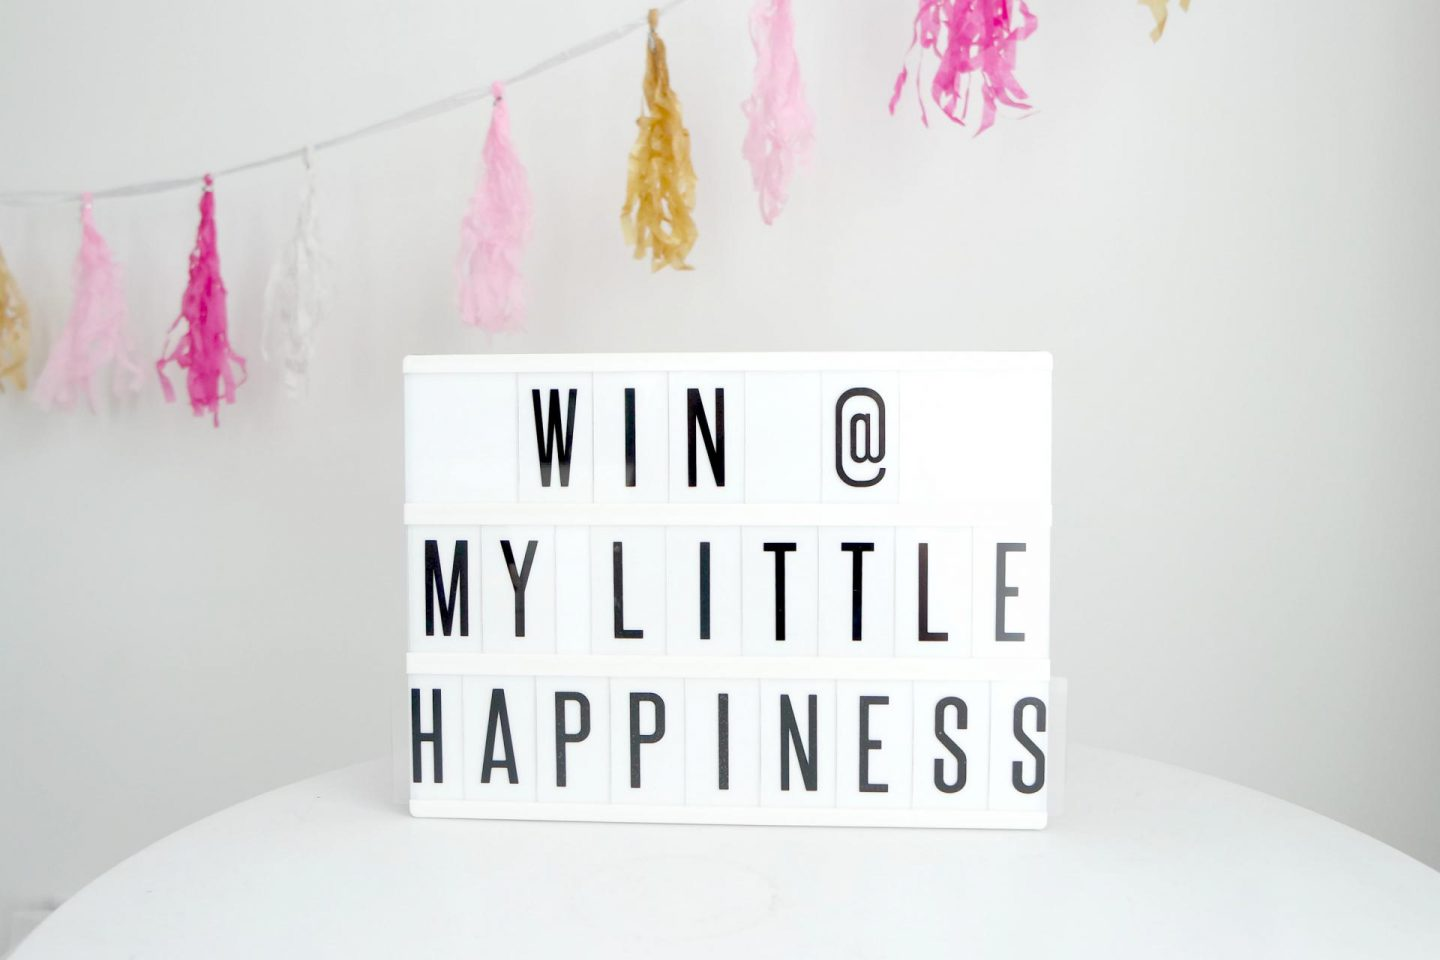 win 25 euor shoptegoed cadeau bij My Little Happiness